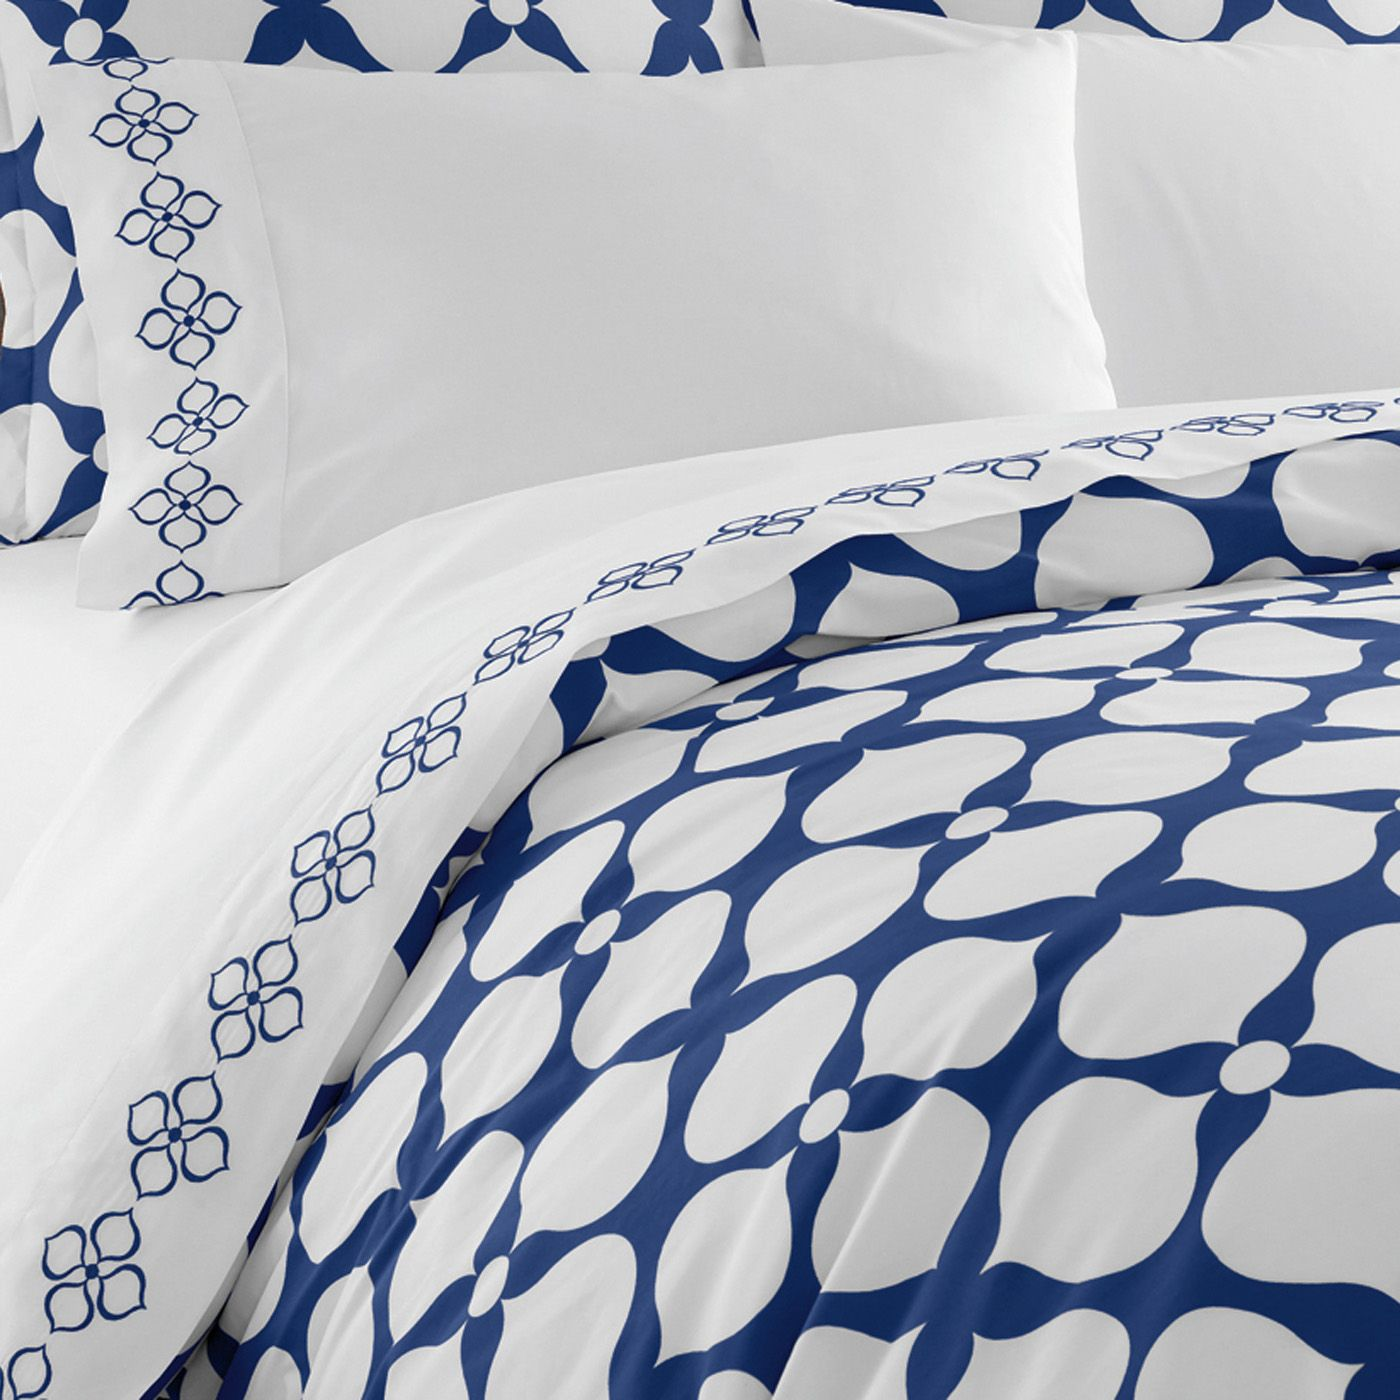 Modern bed sheets pattern - Jonathan Adler Navy Hollywood Duvet Cover In Duvets Would Like With Hot Pink Walls And